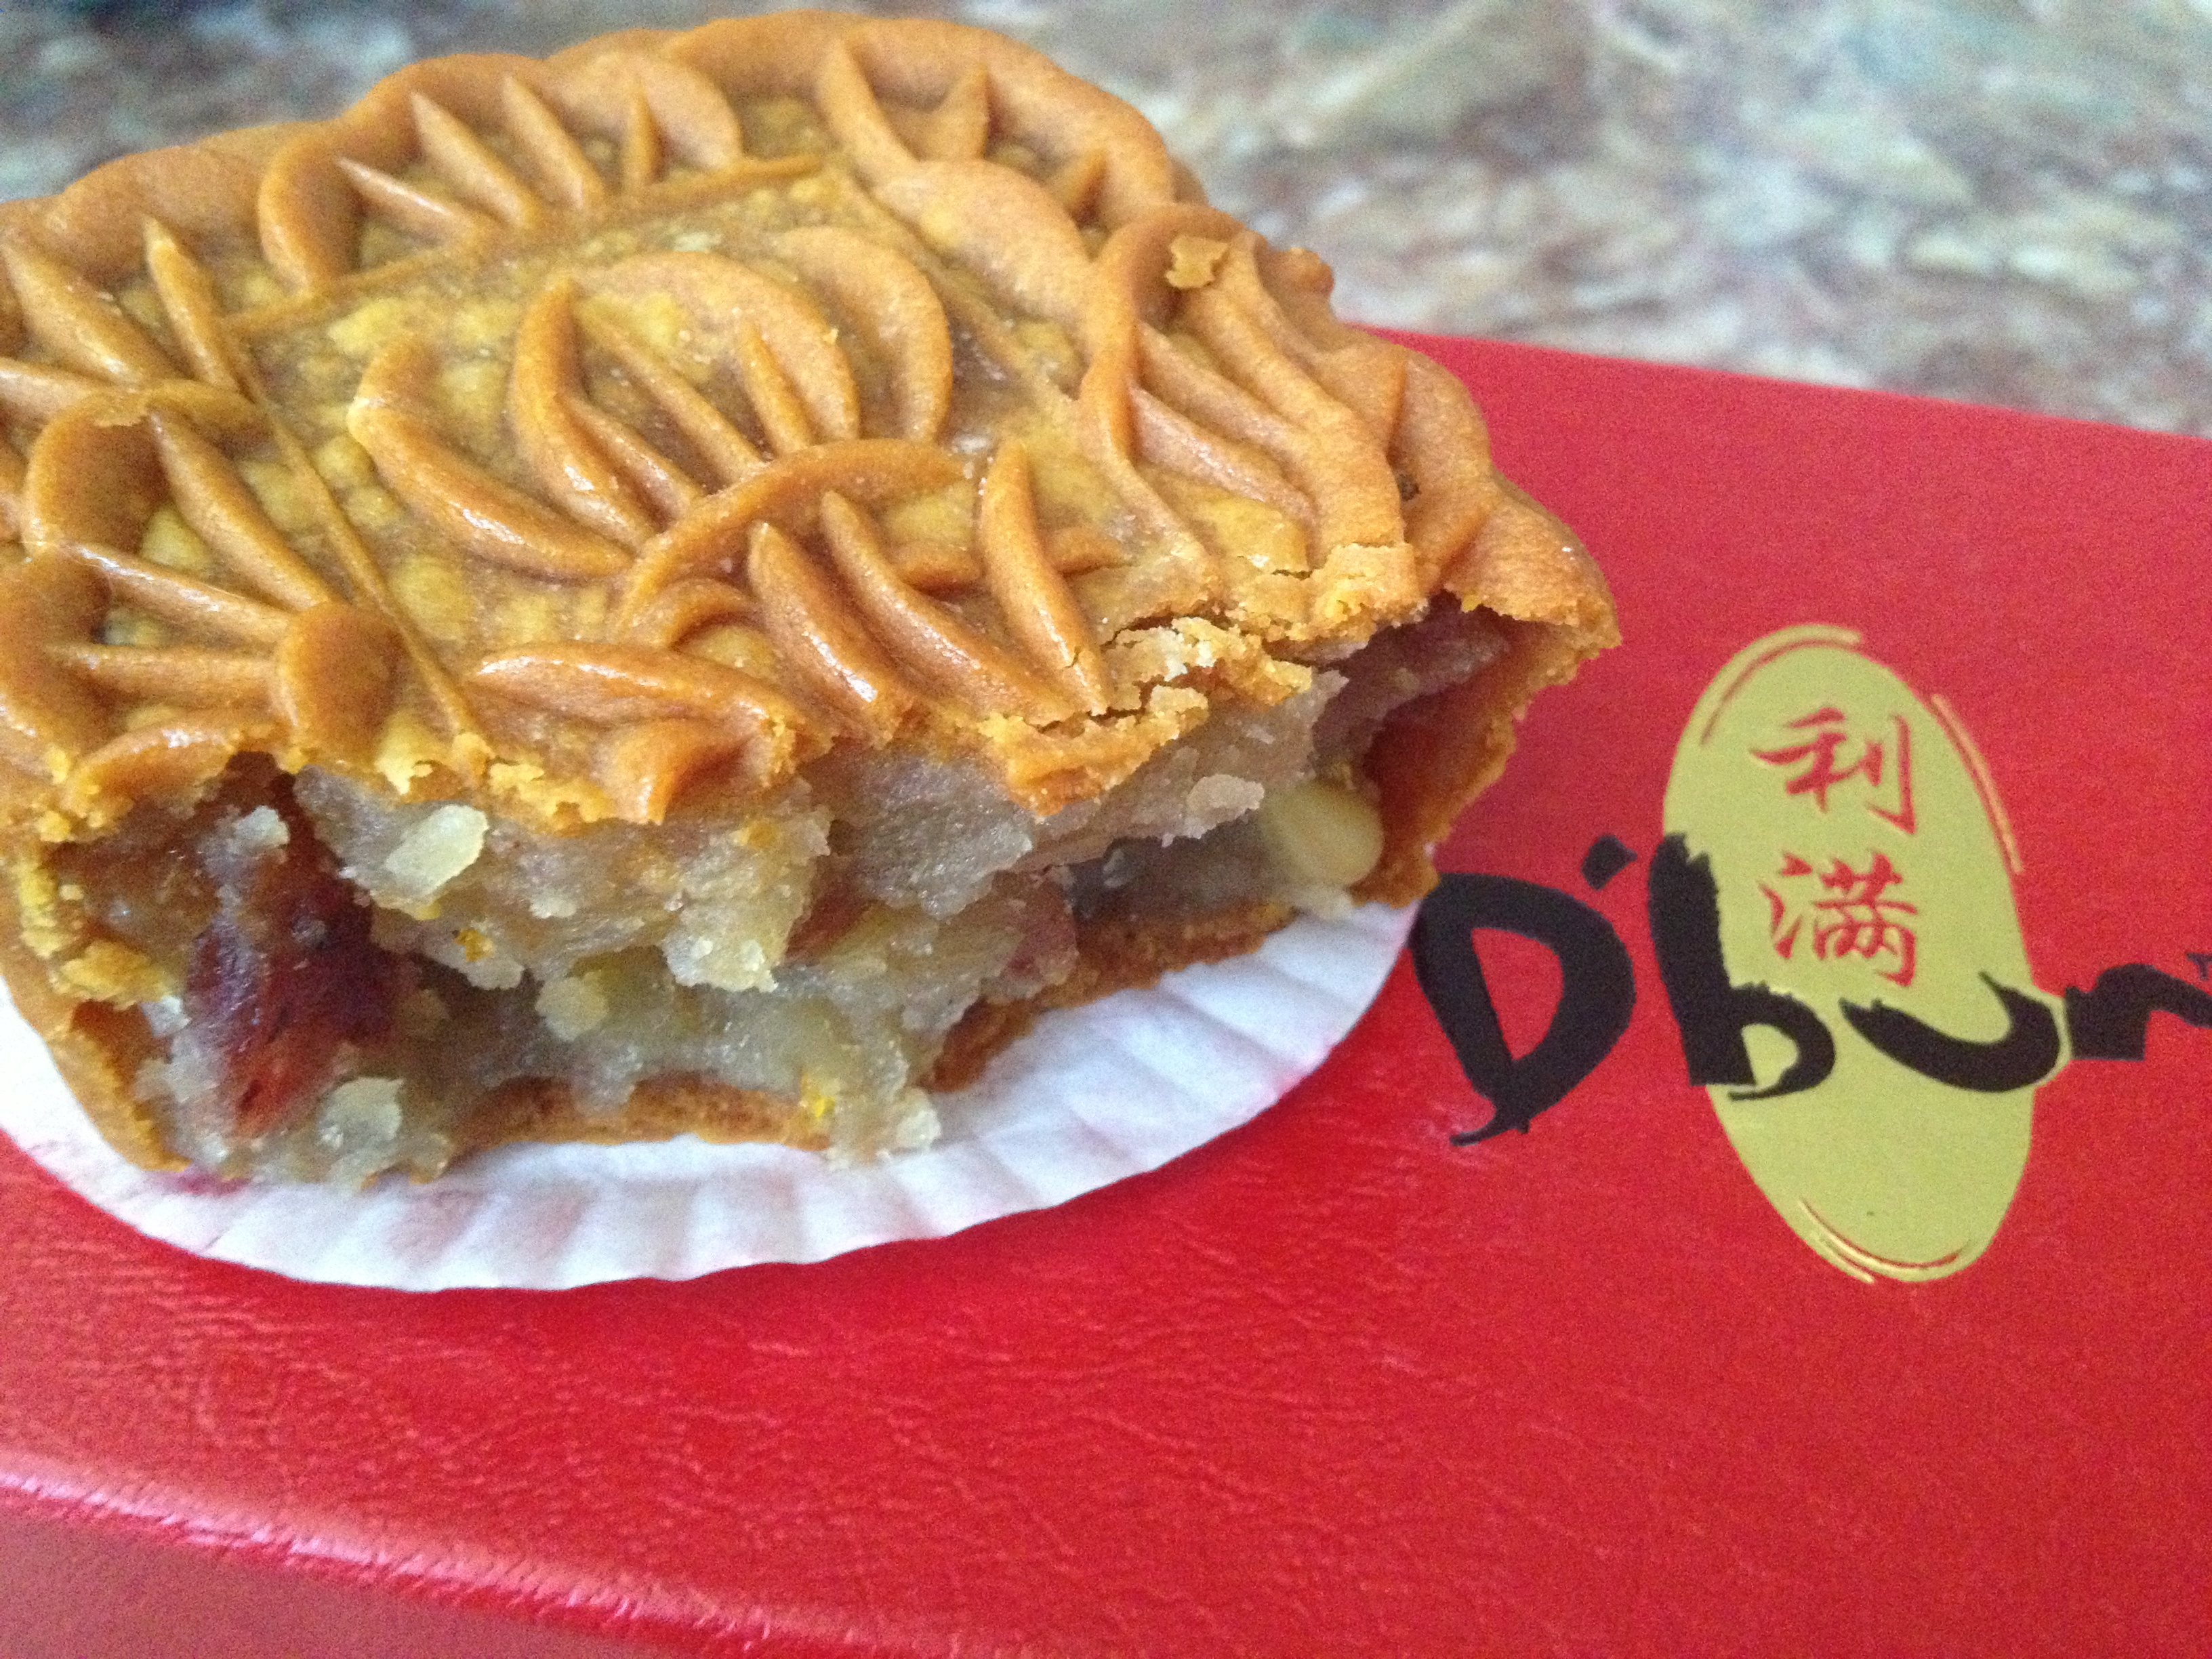 Mooncakes for Mid-Autumn Festival from D'Bun in Singapore